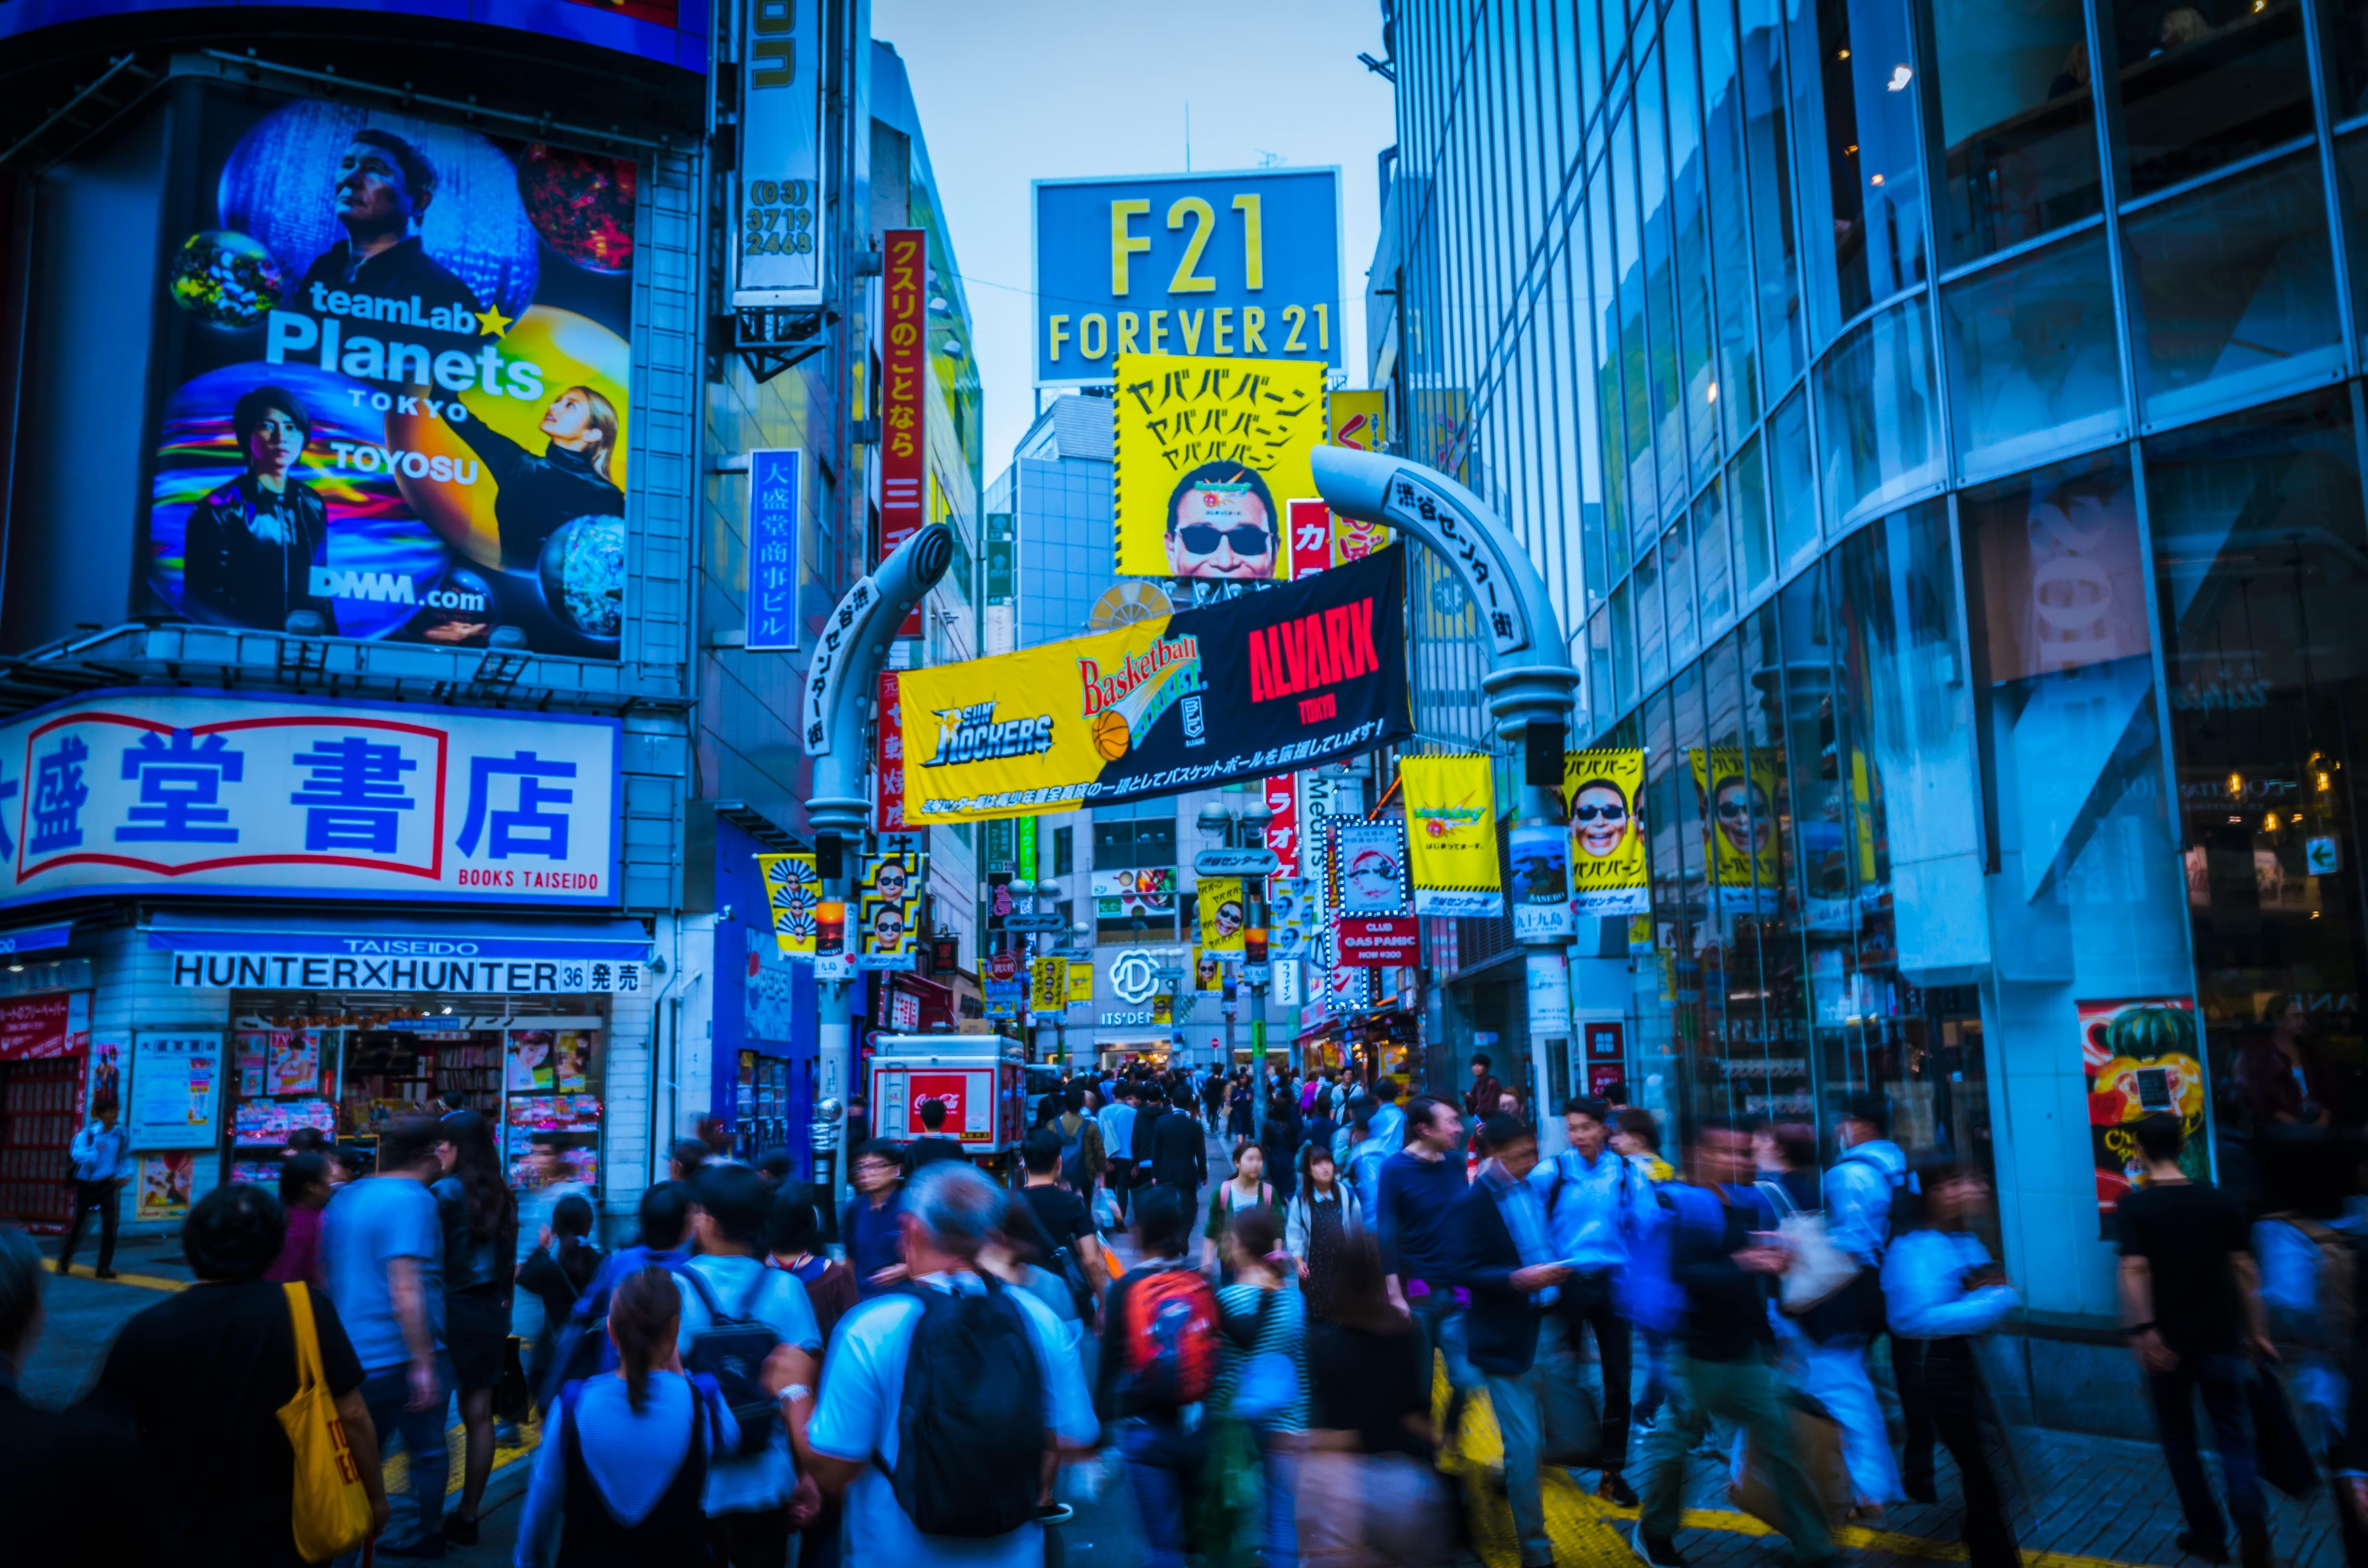 Traversing the Shibuya Crossing is one of the top 10 things to do in Tokyo